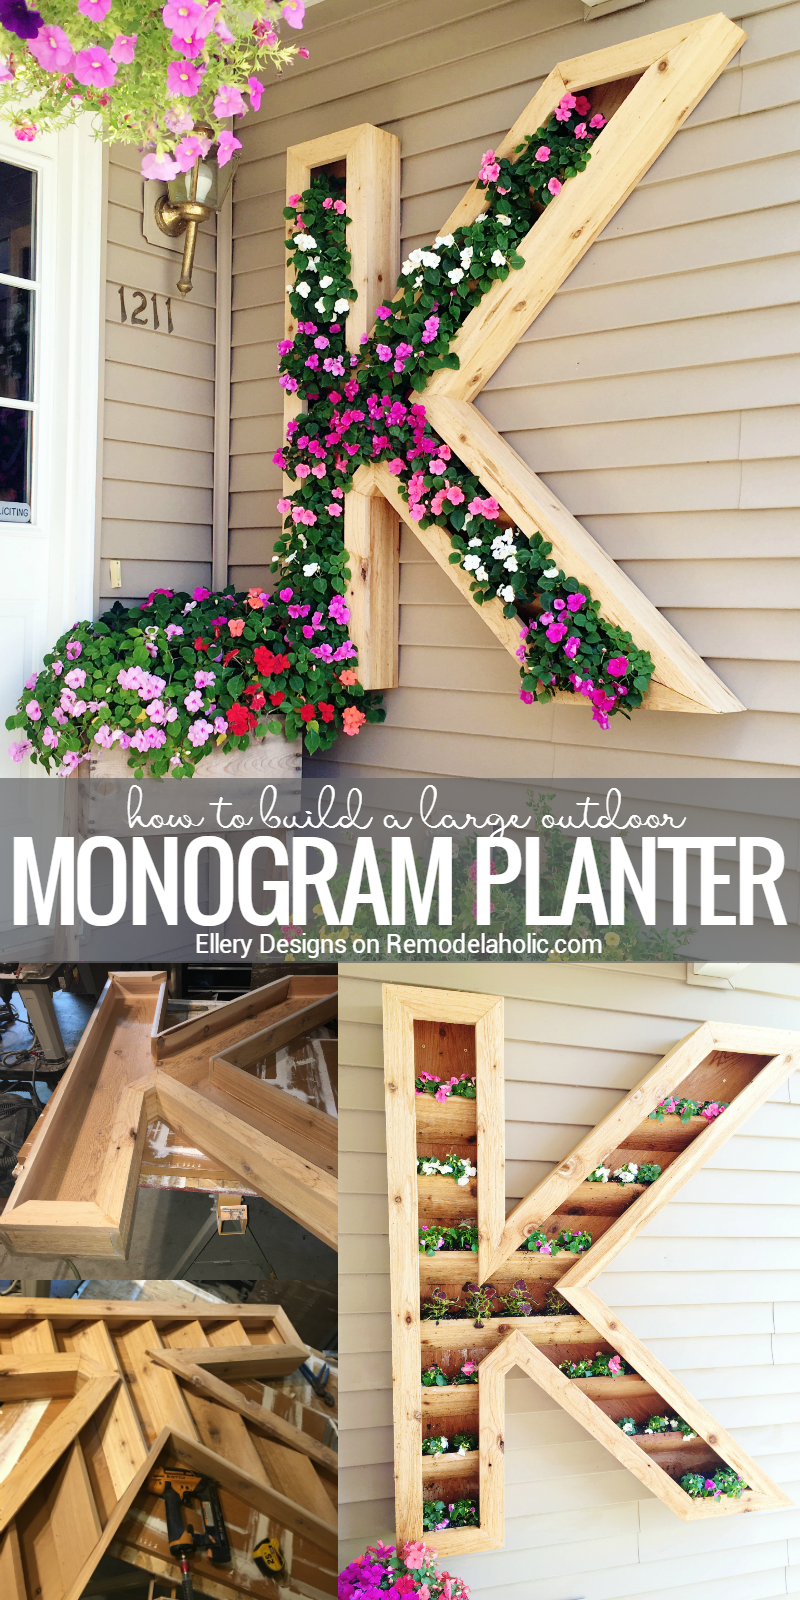 Remodelaholic diy monogram planter tutorial for Cheap home stuff